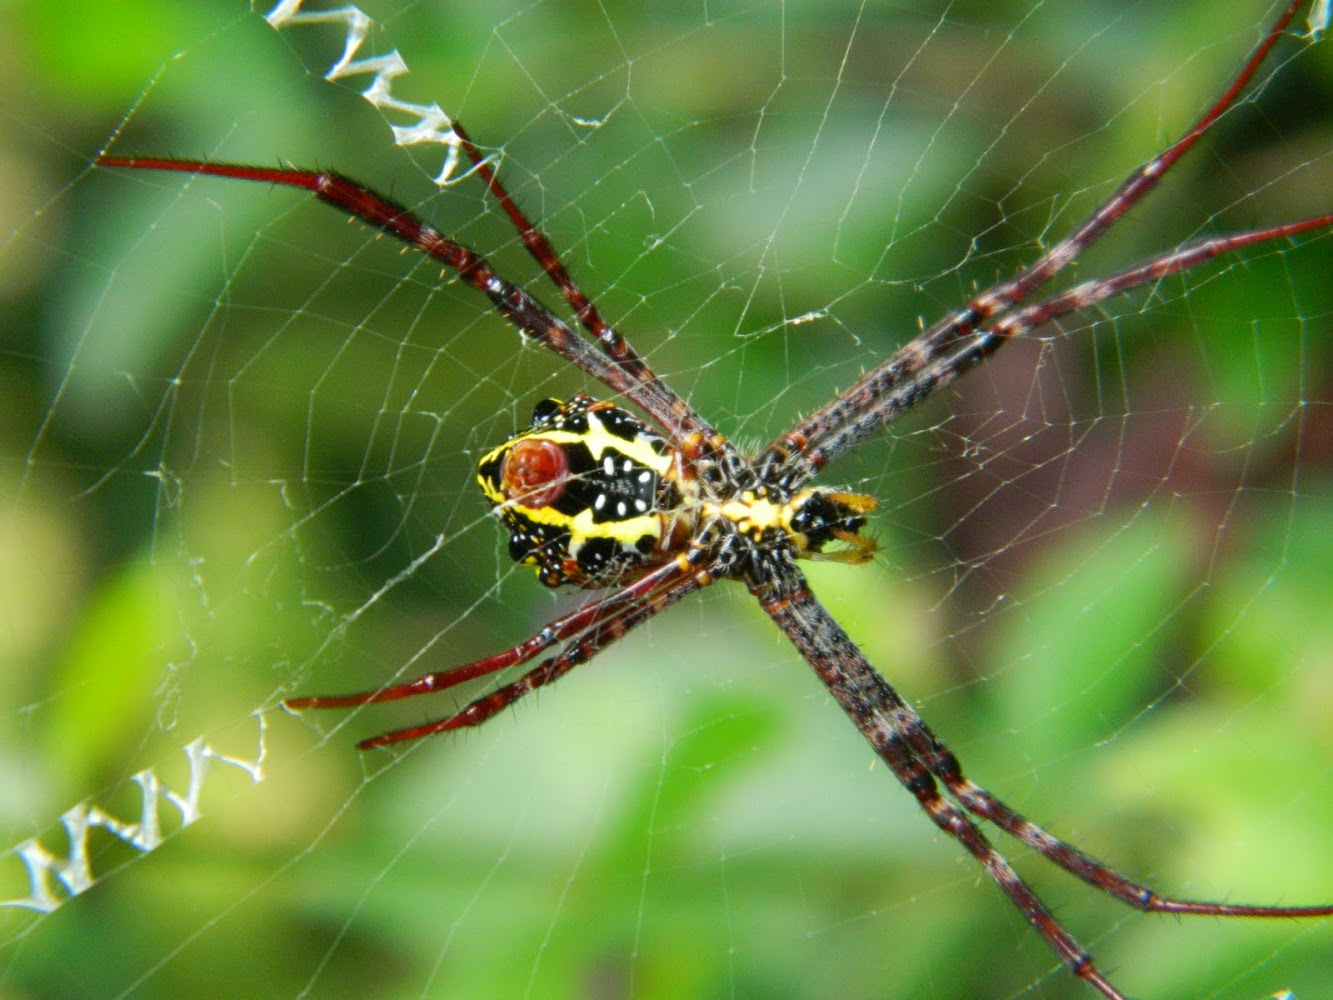 Thai Spider / In Search of Beauty